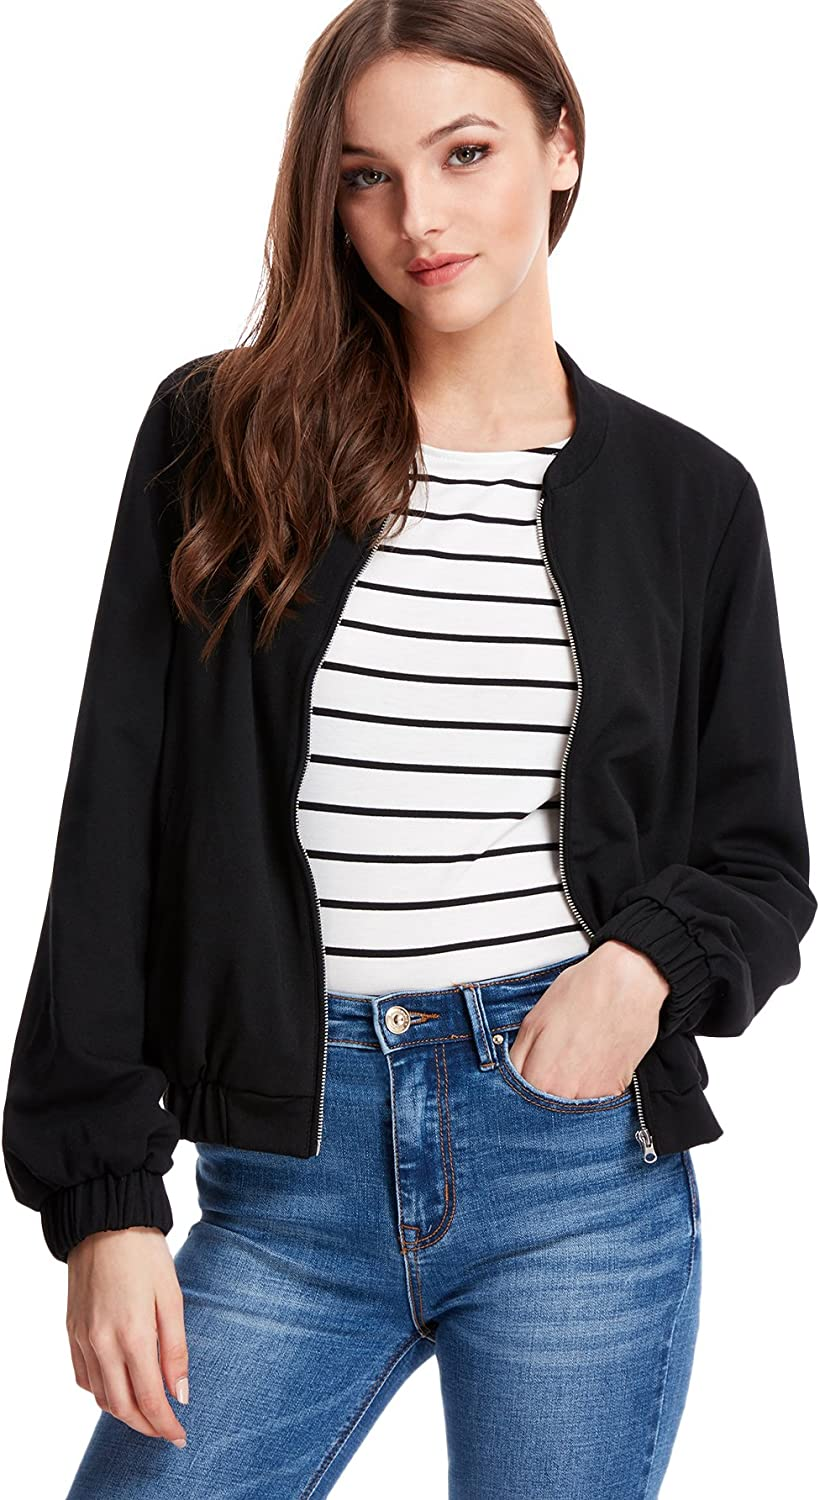 Floerns Women's Causal Long Sleeve Zip up Bomber Jacket with Pockets